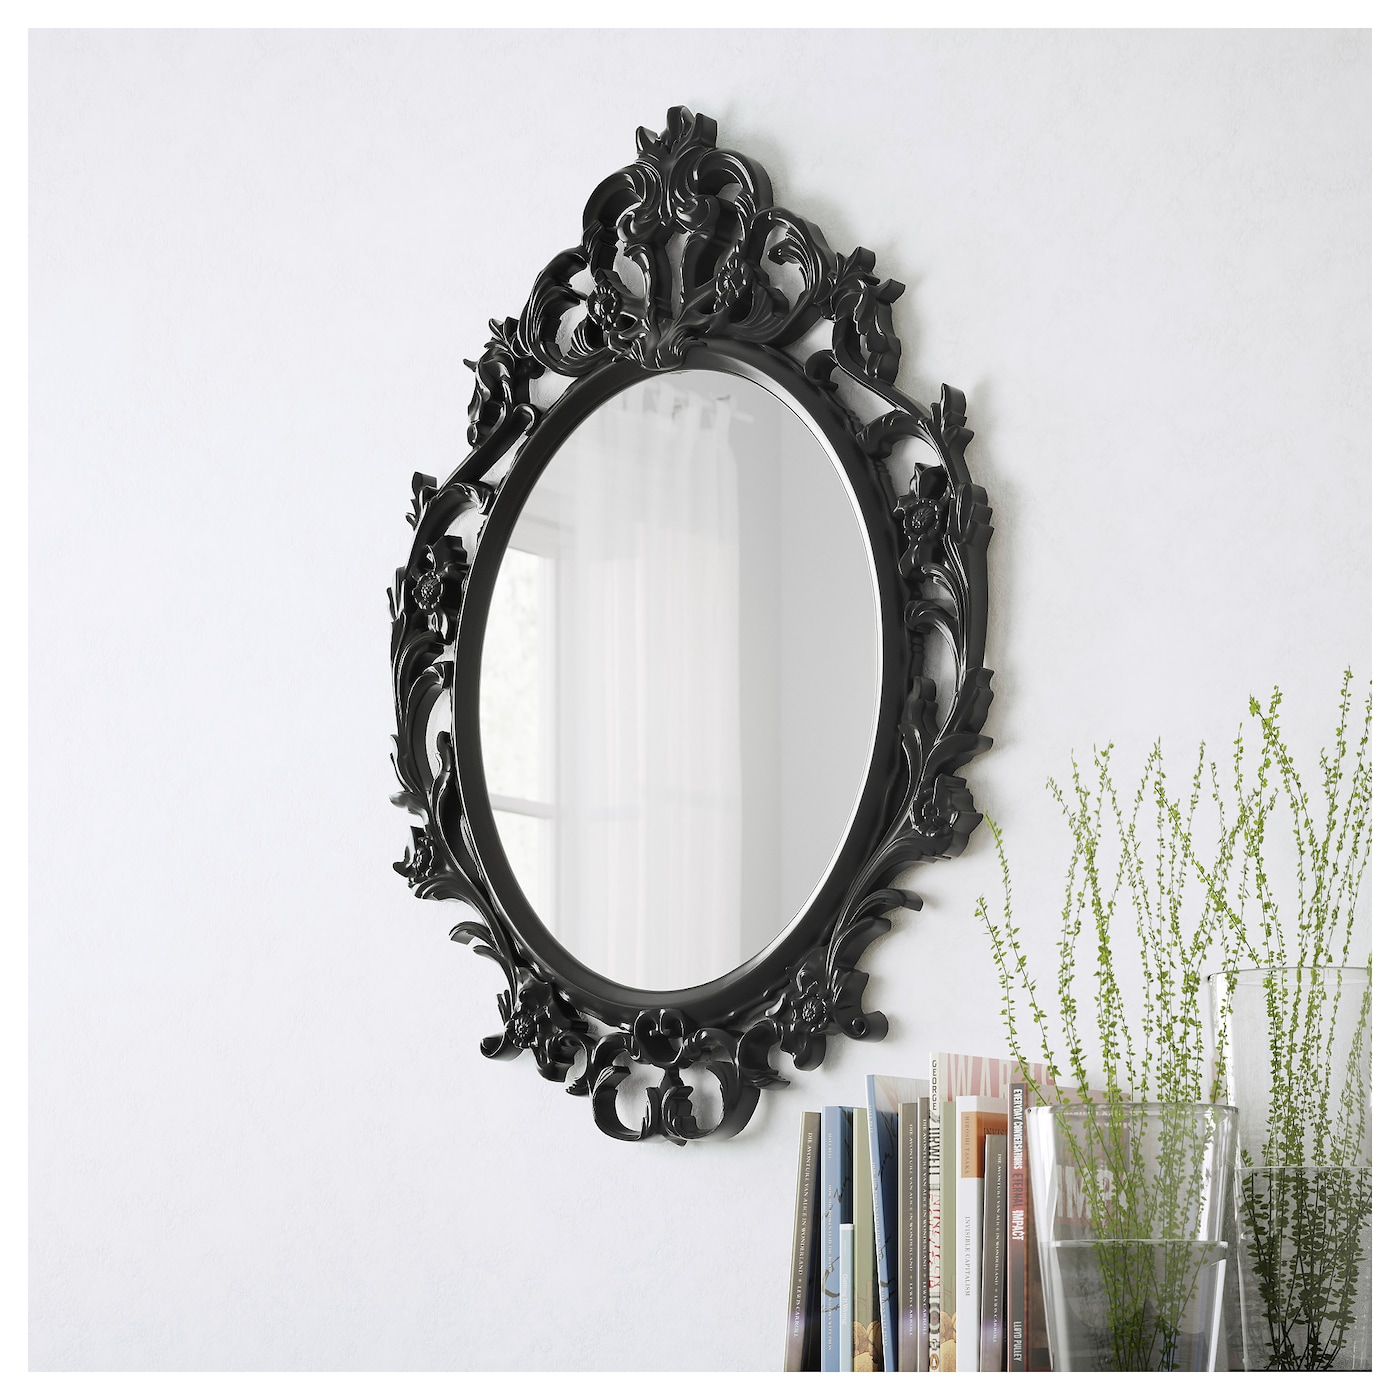 ung drill mirror oval black 59x85 cm ikea